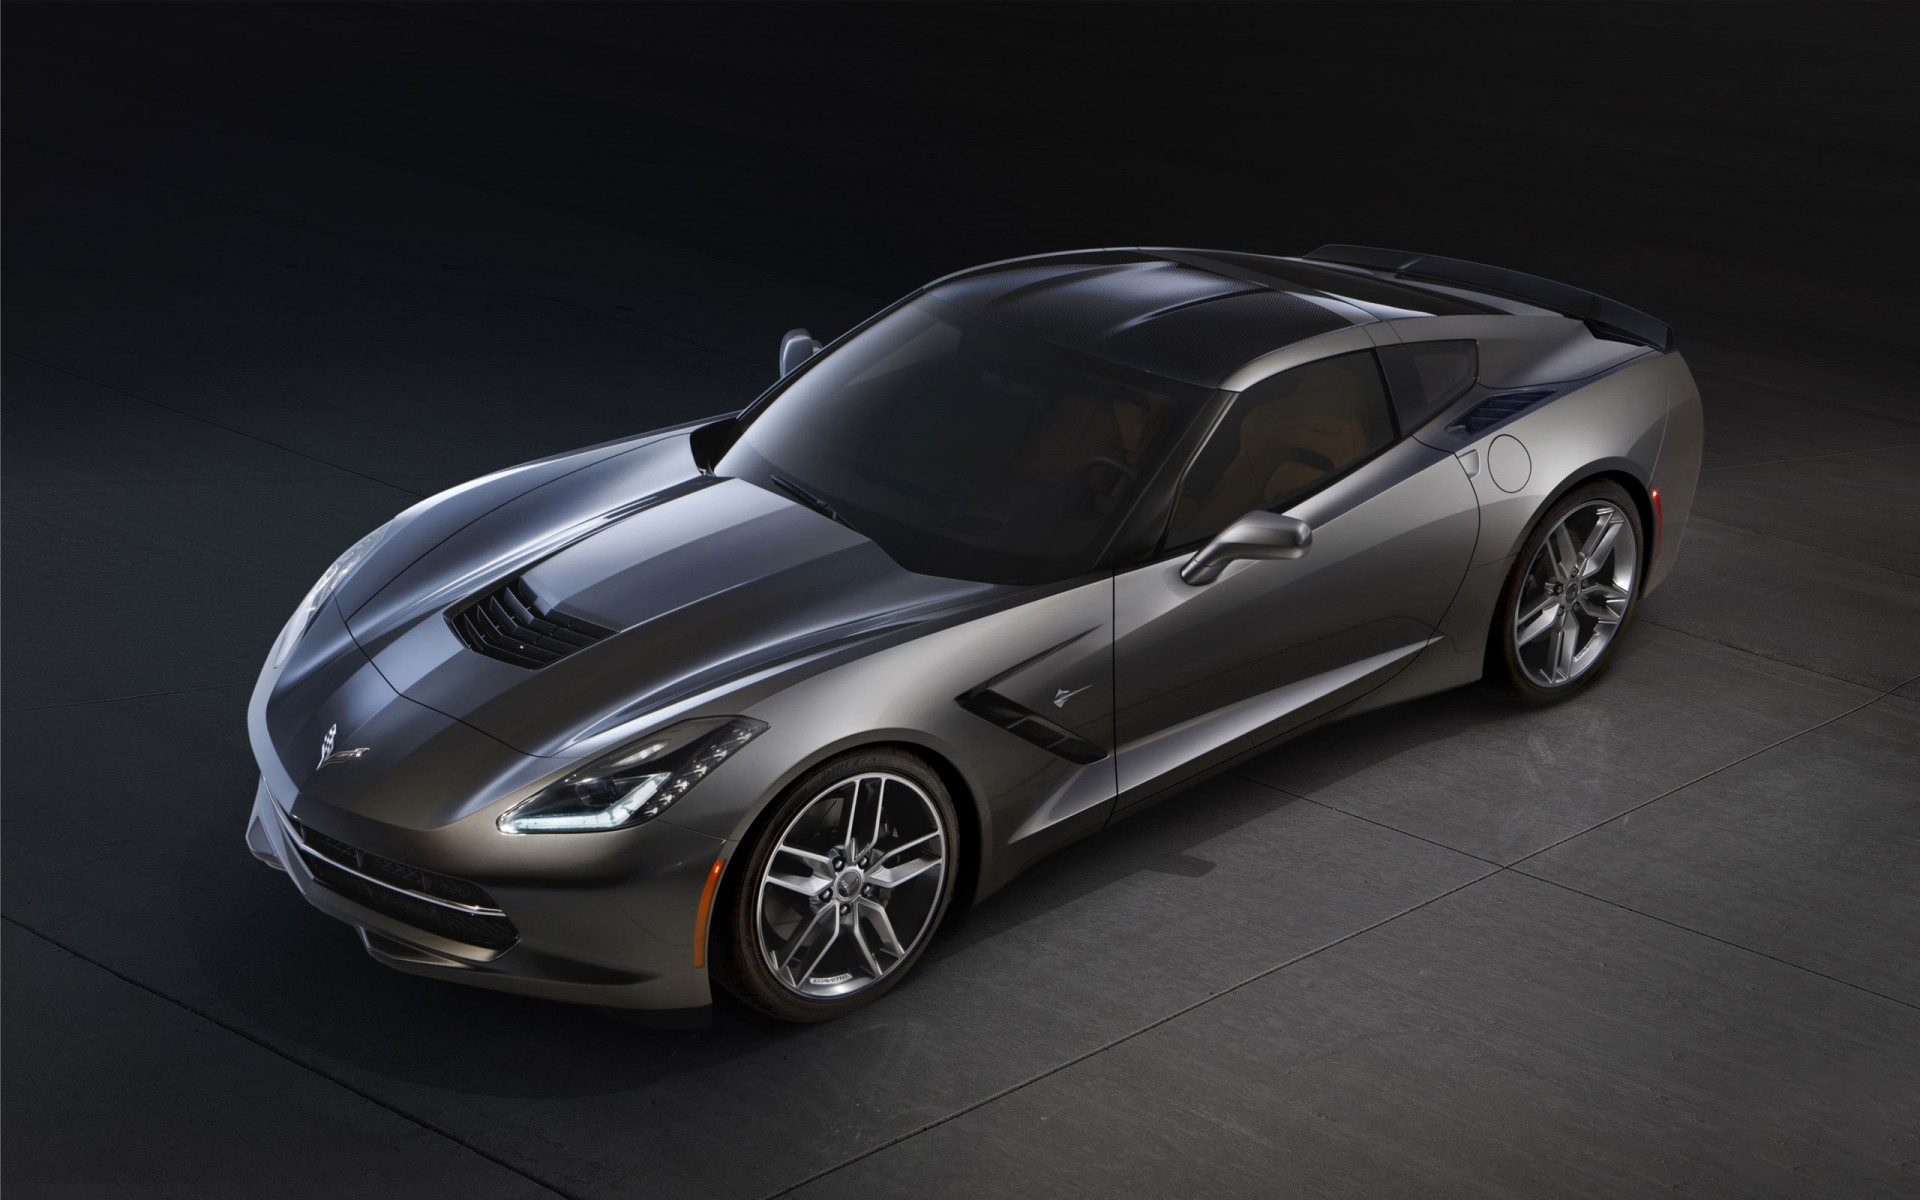 chevrolet corvette c7 stingray 2014 wallpaper hd car wallpapers. Cars Review. Best American Auto & Cars Review